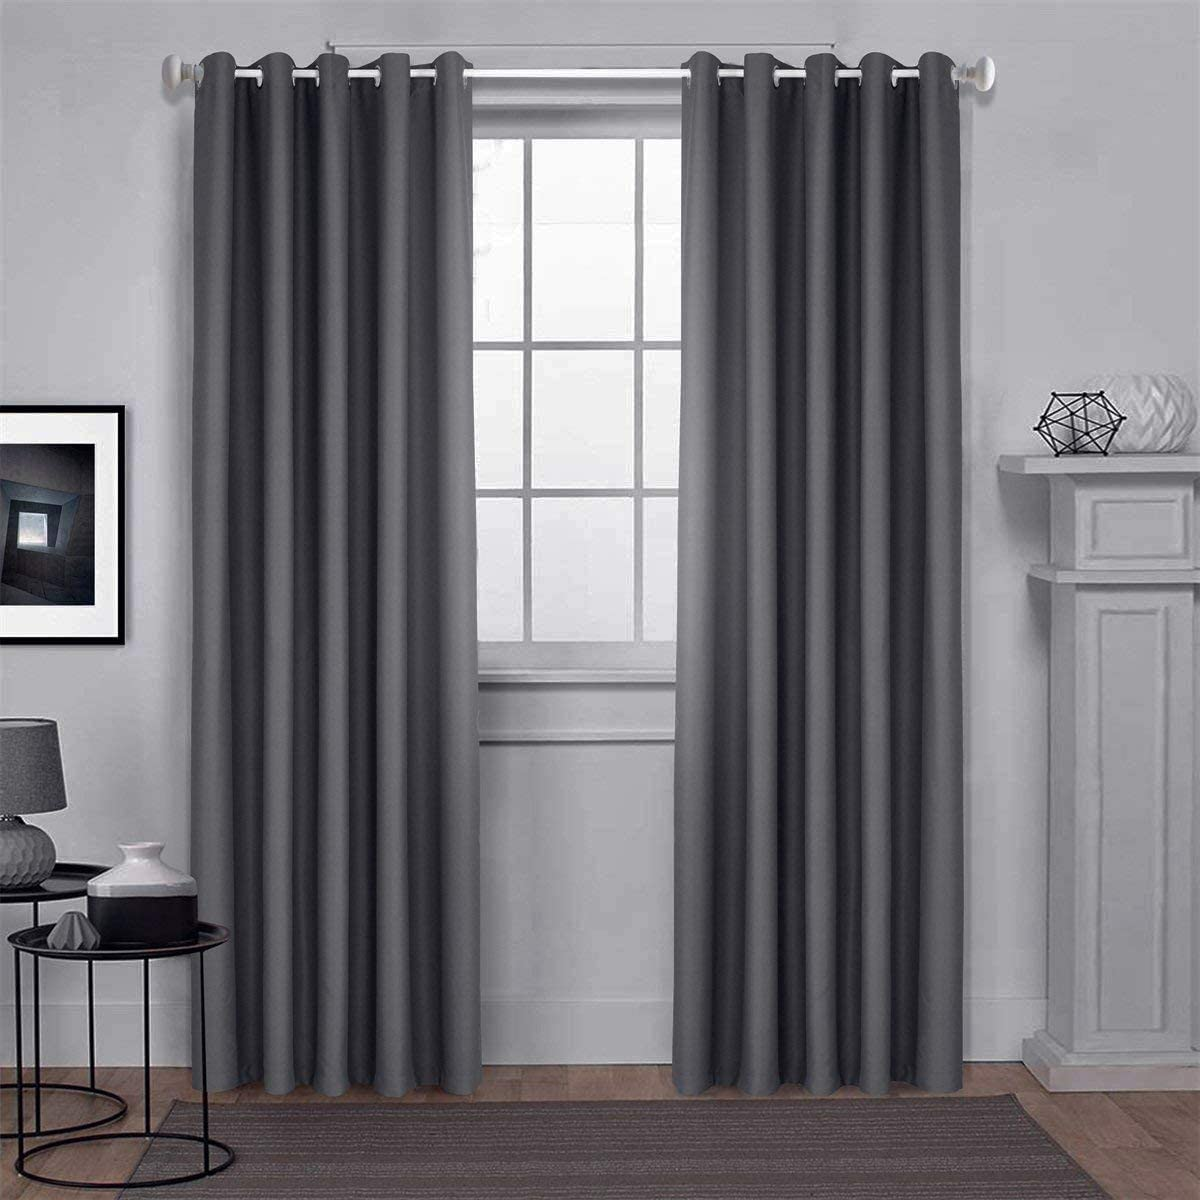 """Dreaming Casa Blackout Curtains Eyelets Grey Thermal Insulated Bedroom Curtains Ring Top Solid Curtains for Kidsroom Window Treatments Blackout 46 x 72 Drop Inch 2 Panels 46"""" wide x 72"""" drop (117cm x 183cm) Solid-eyelet-grey-(2 Panels)"""